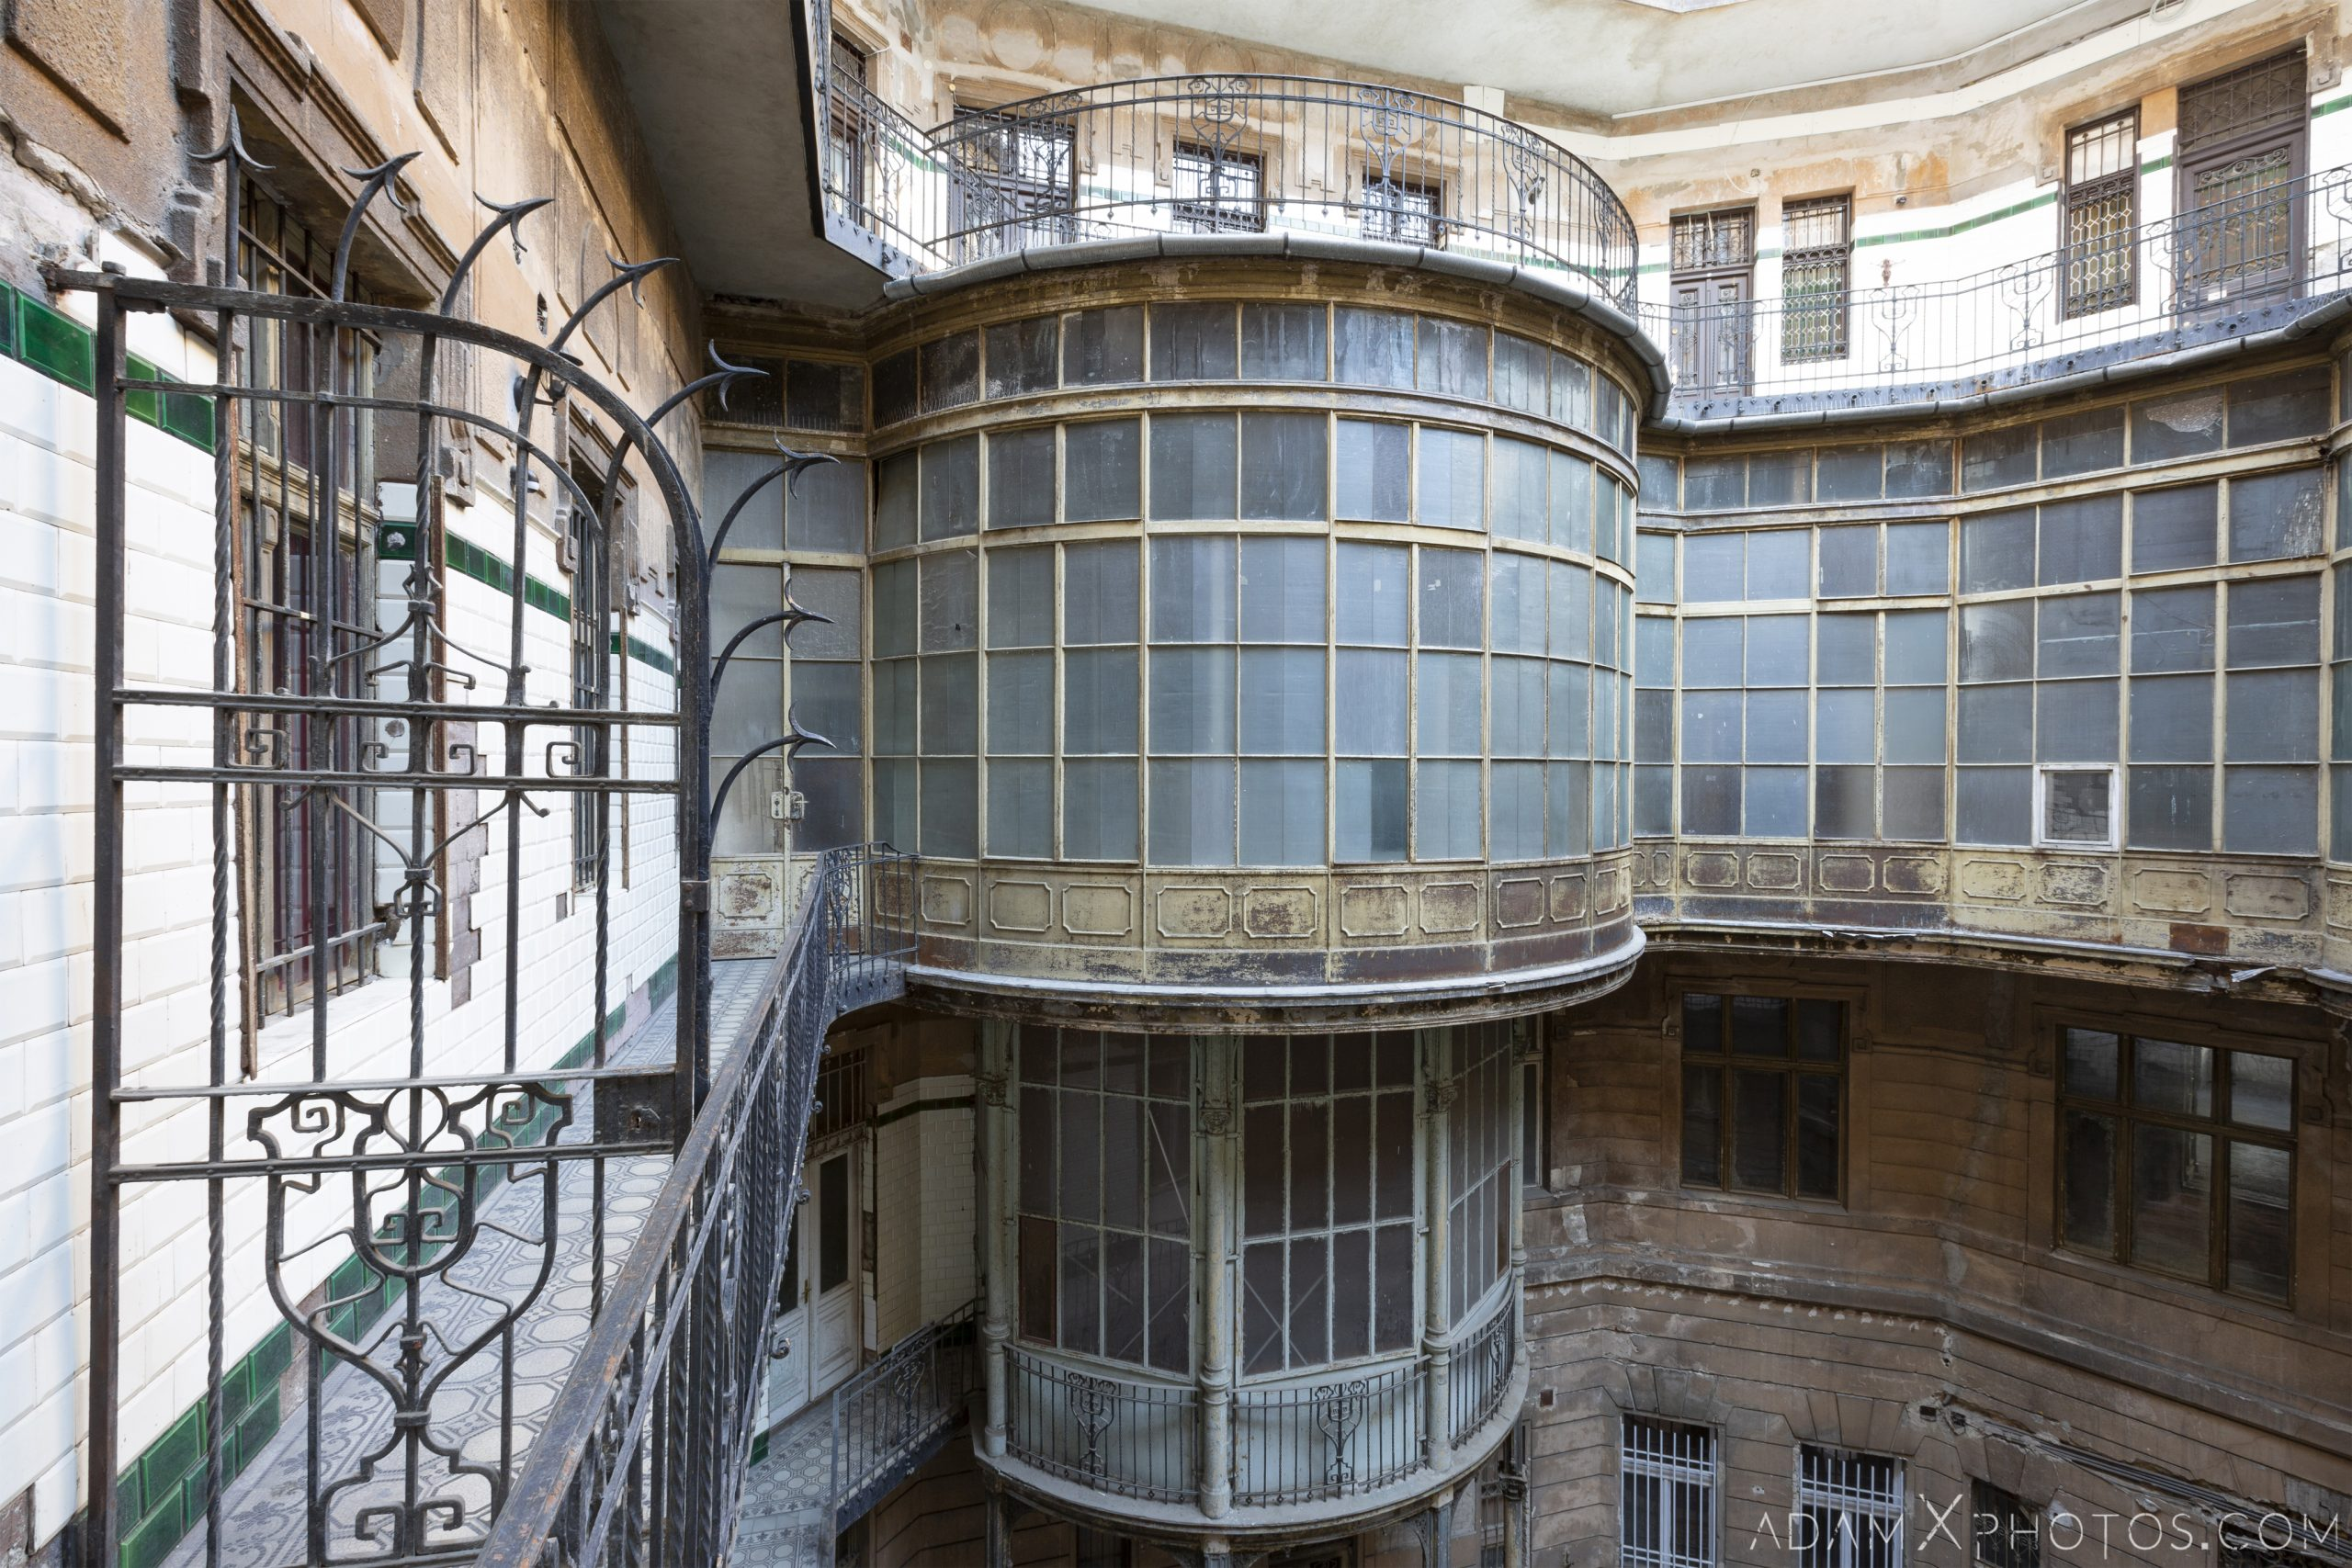 exterior outside railings gate Curved walkway balcony windows courtyard Adria Palace Budapest Hungary Adam X Urbex Urban Exploration Access 2018 Blade Runner 2049 Abandoned decay ruins lost forgotten derelict location creepy haunting eerie security ornate grand neo baroque